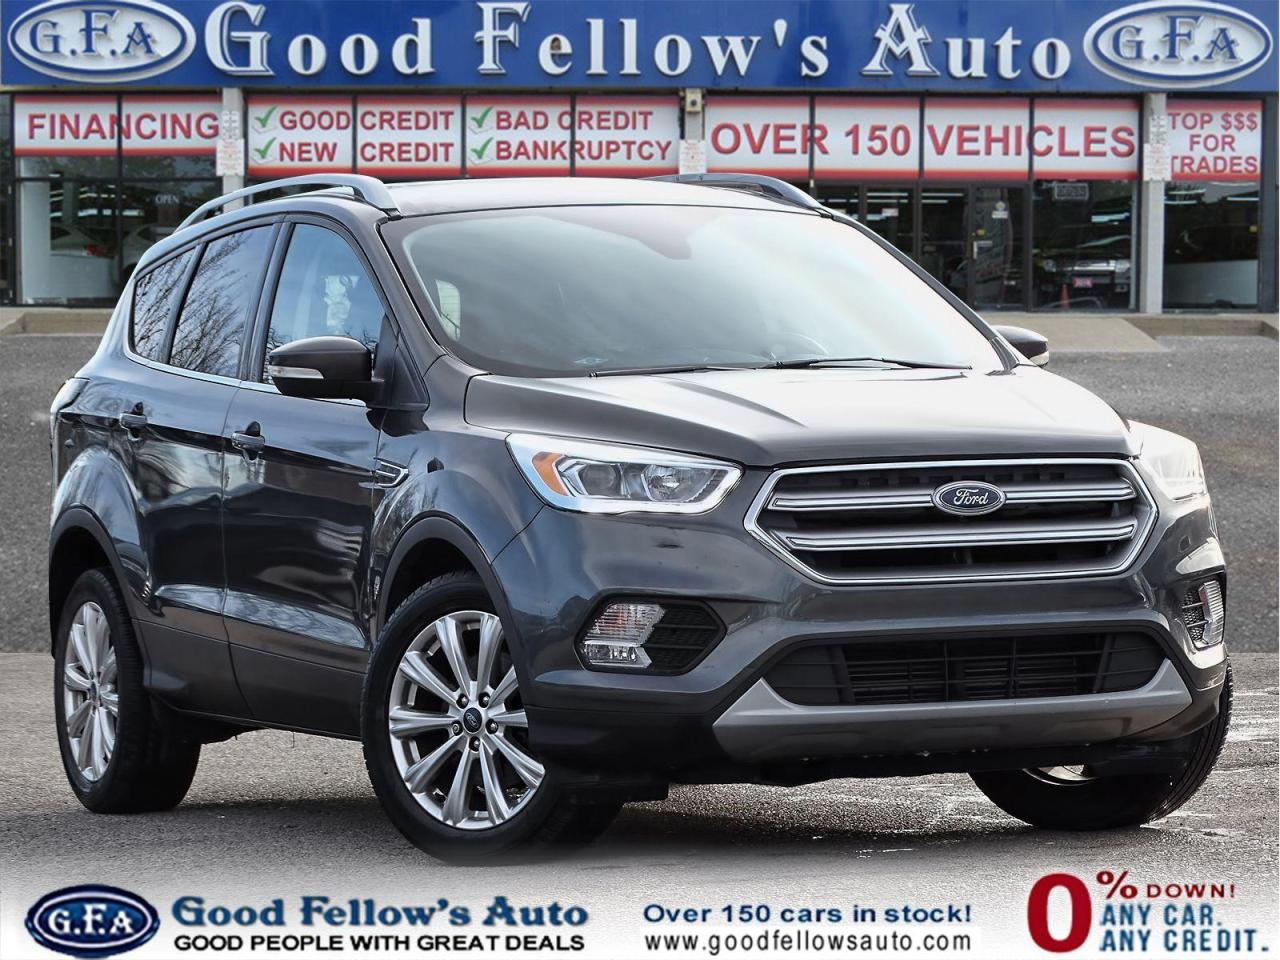 used 2017 Ford Escape car, priced at $19,900